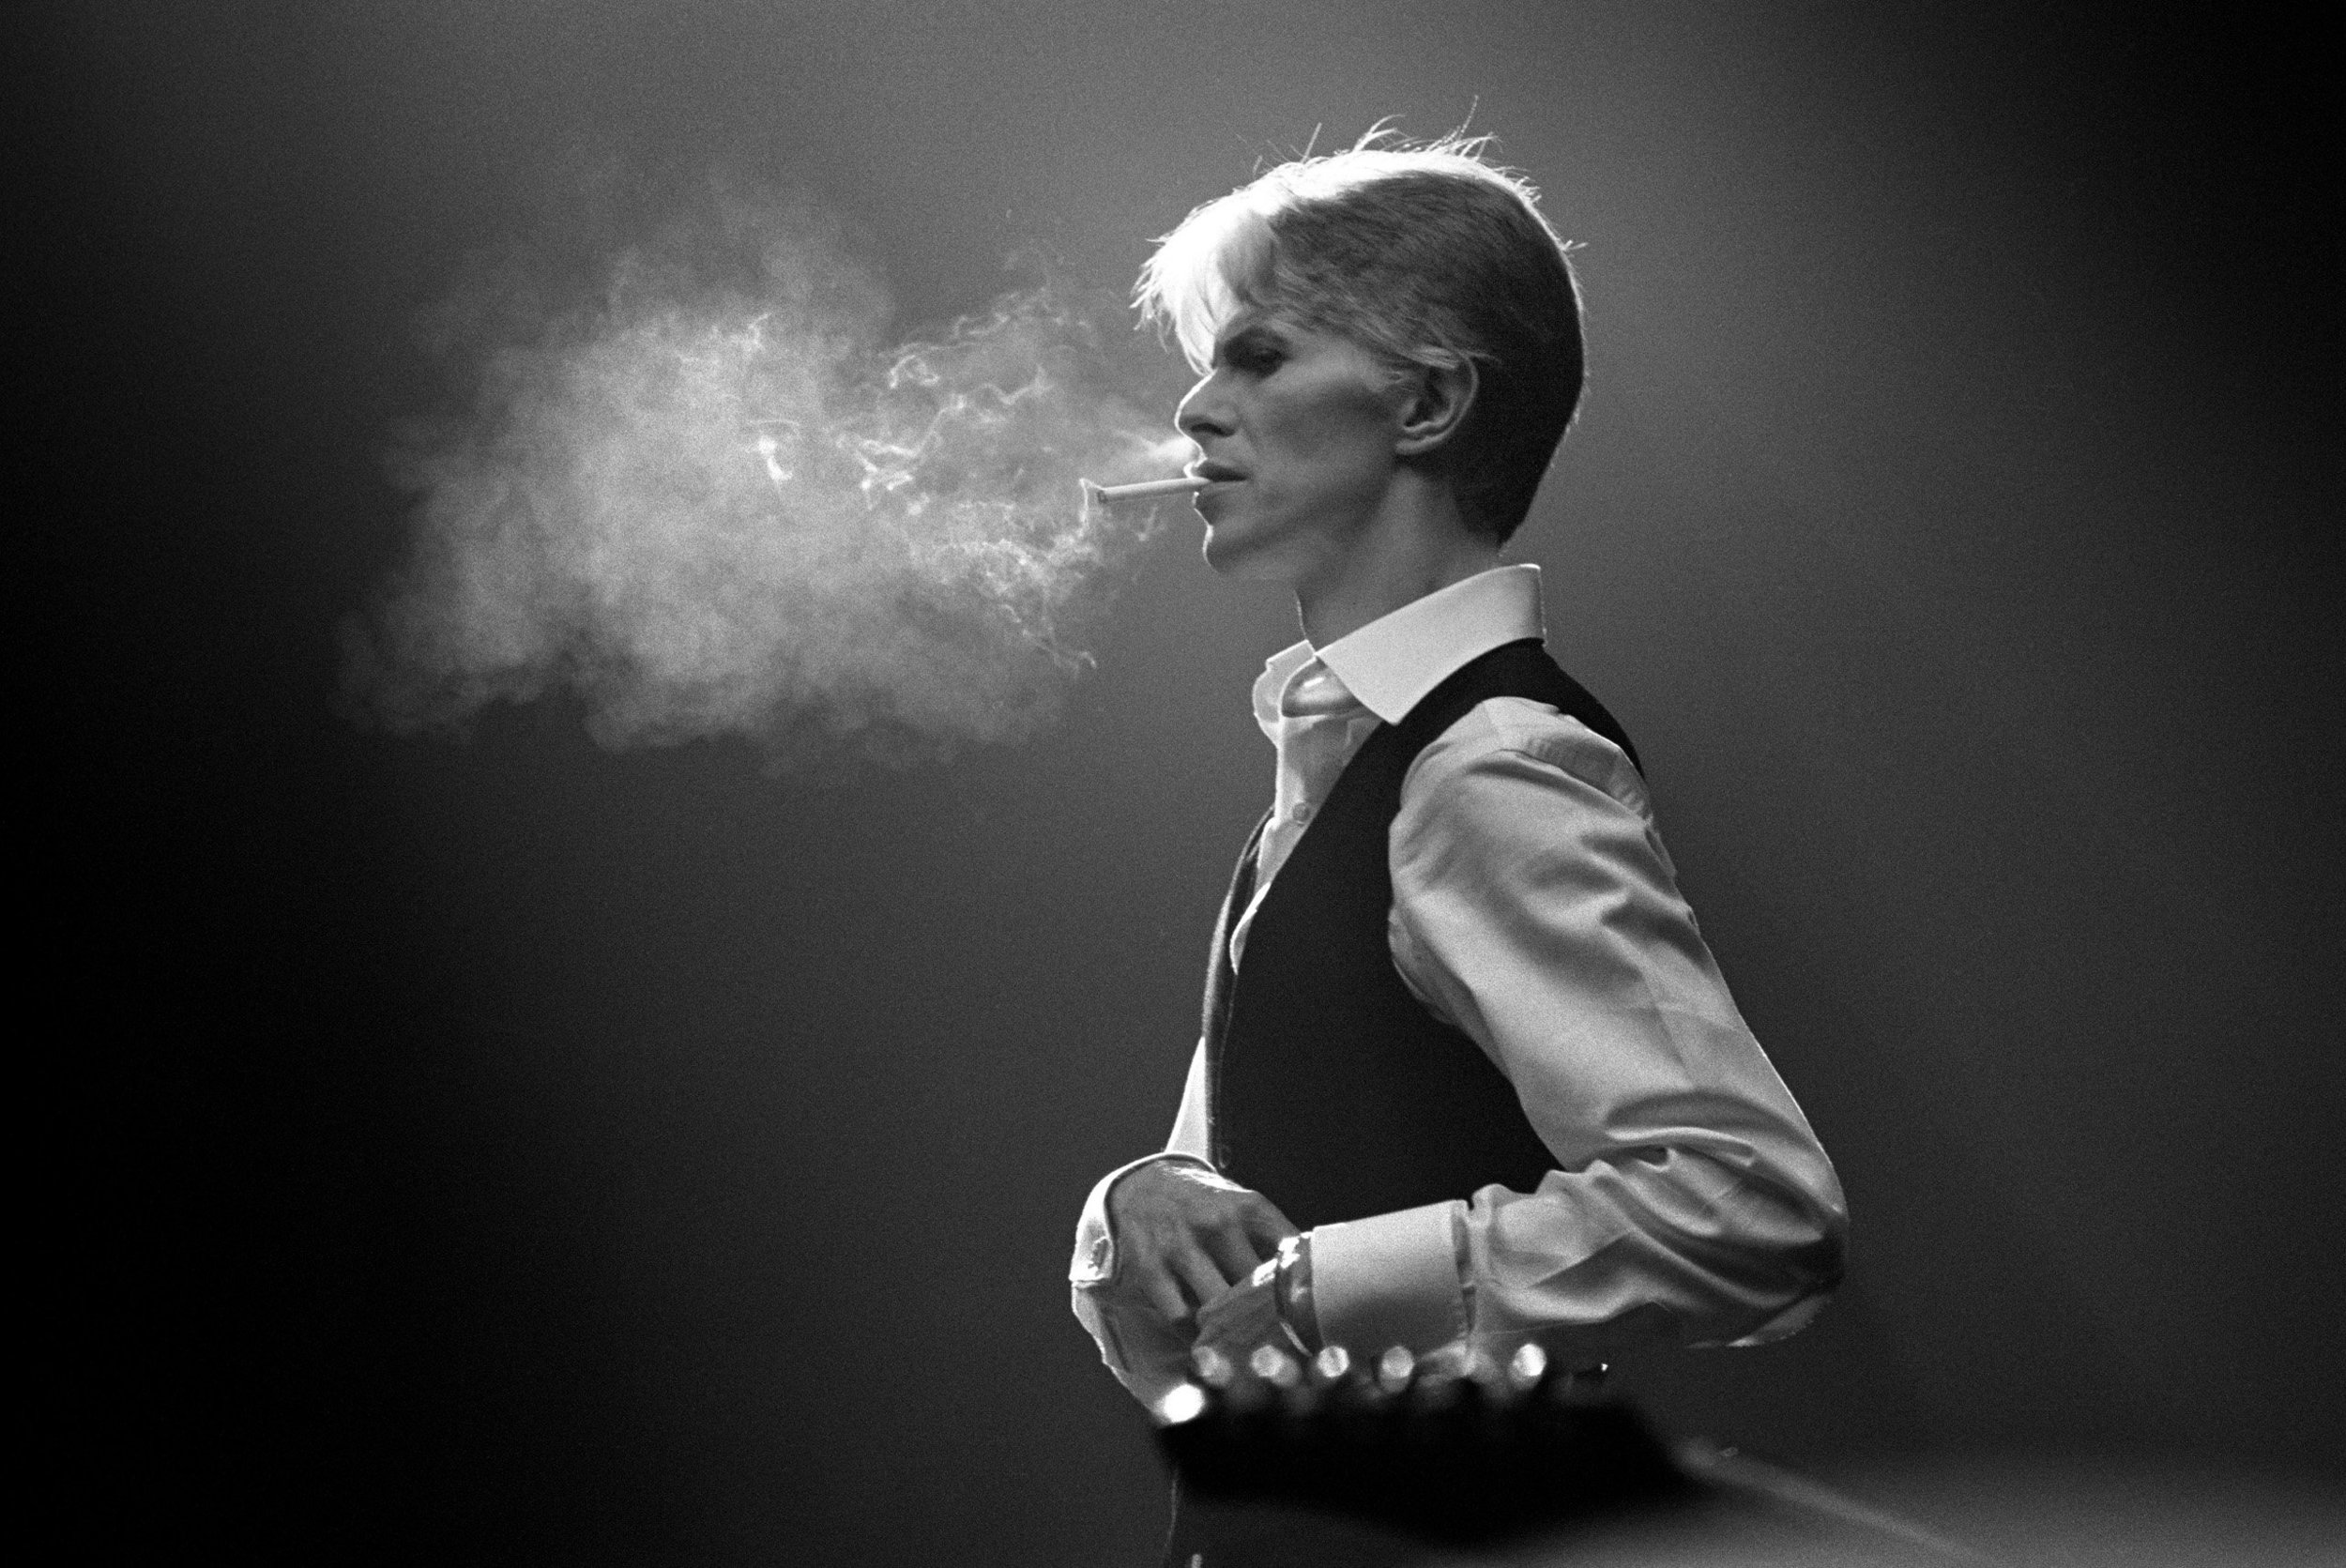 - David Bowie revolutionized the entertainment world, from music to movies to fashion. His run as